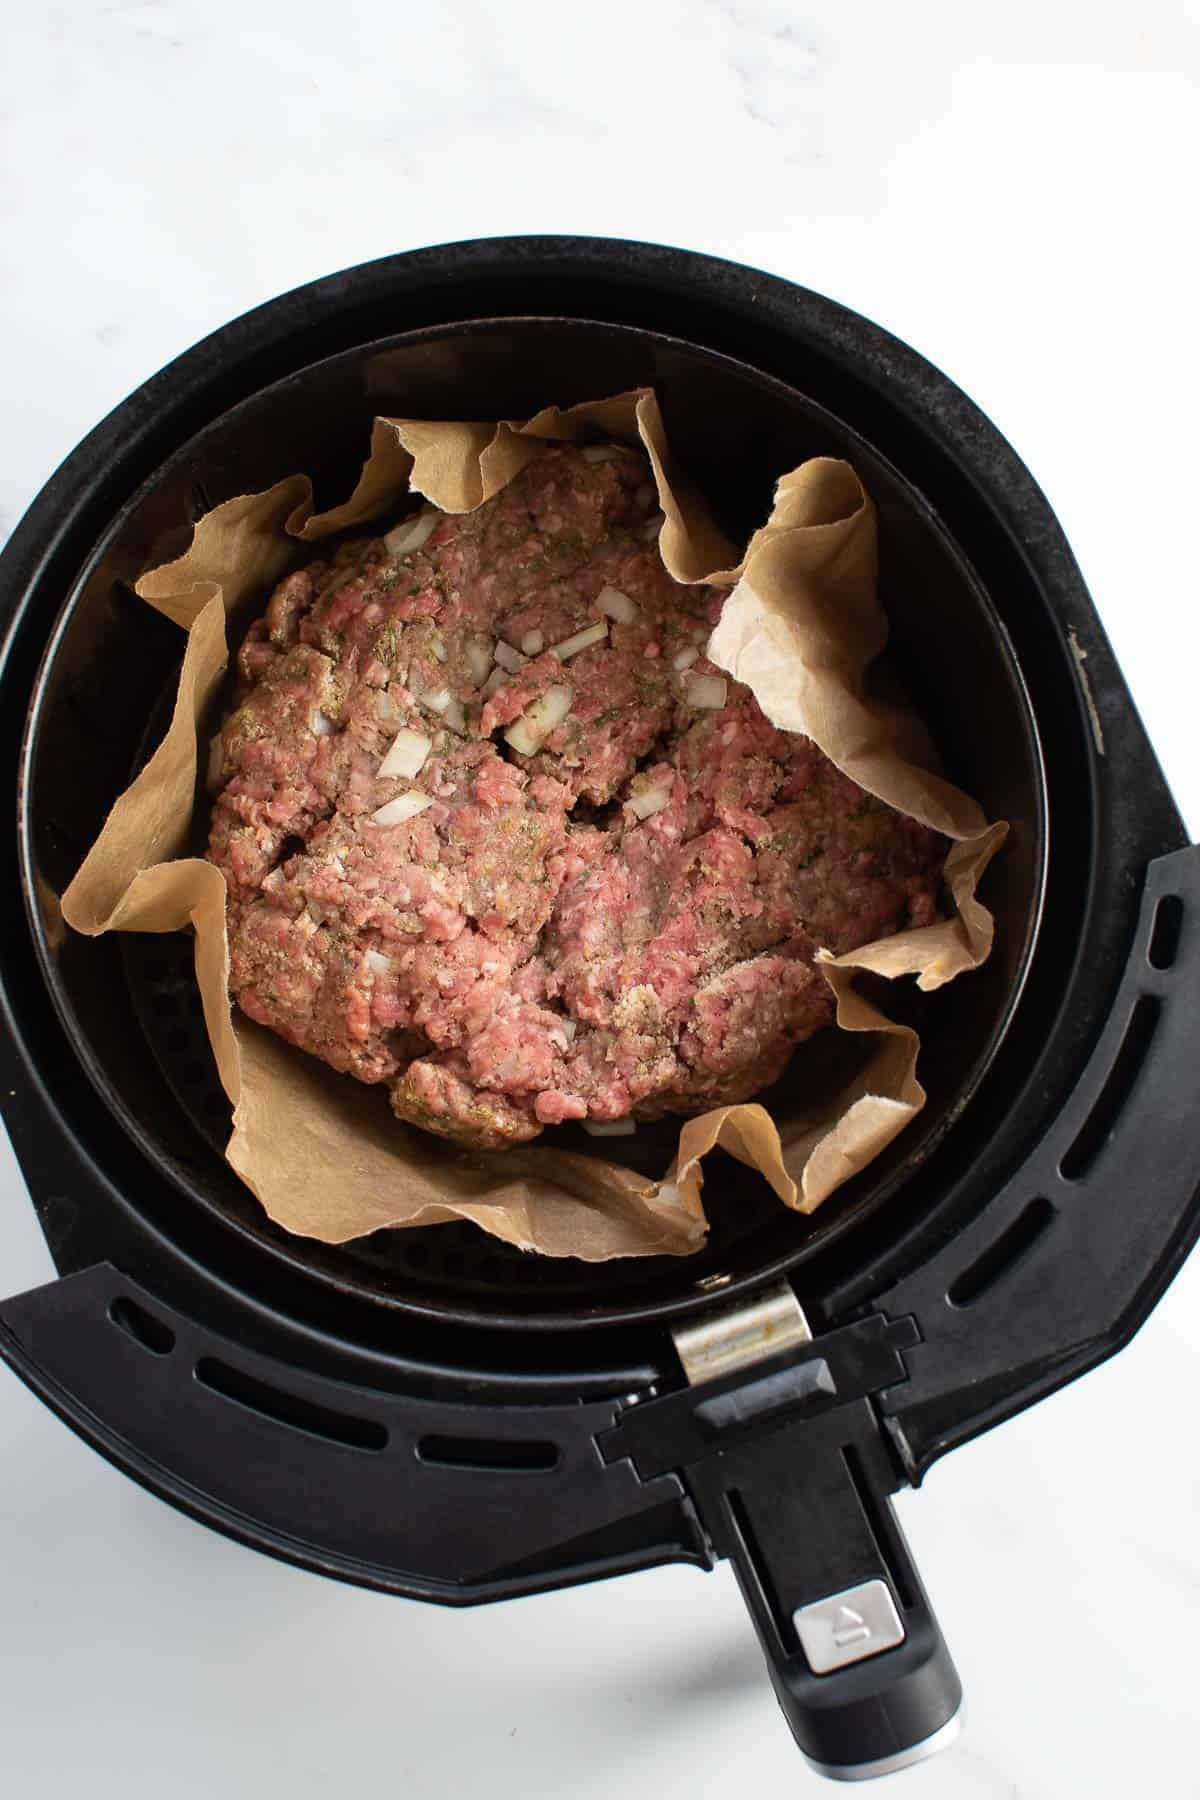 Raw meatloaf in an air fryer.